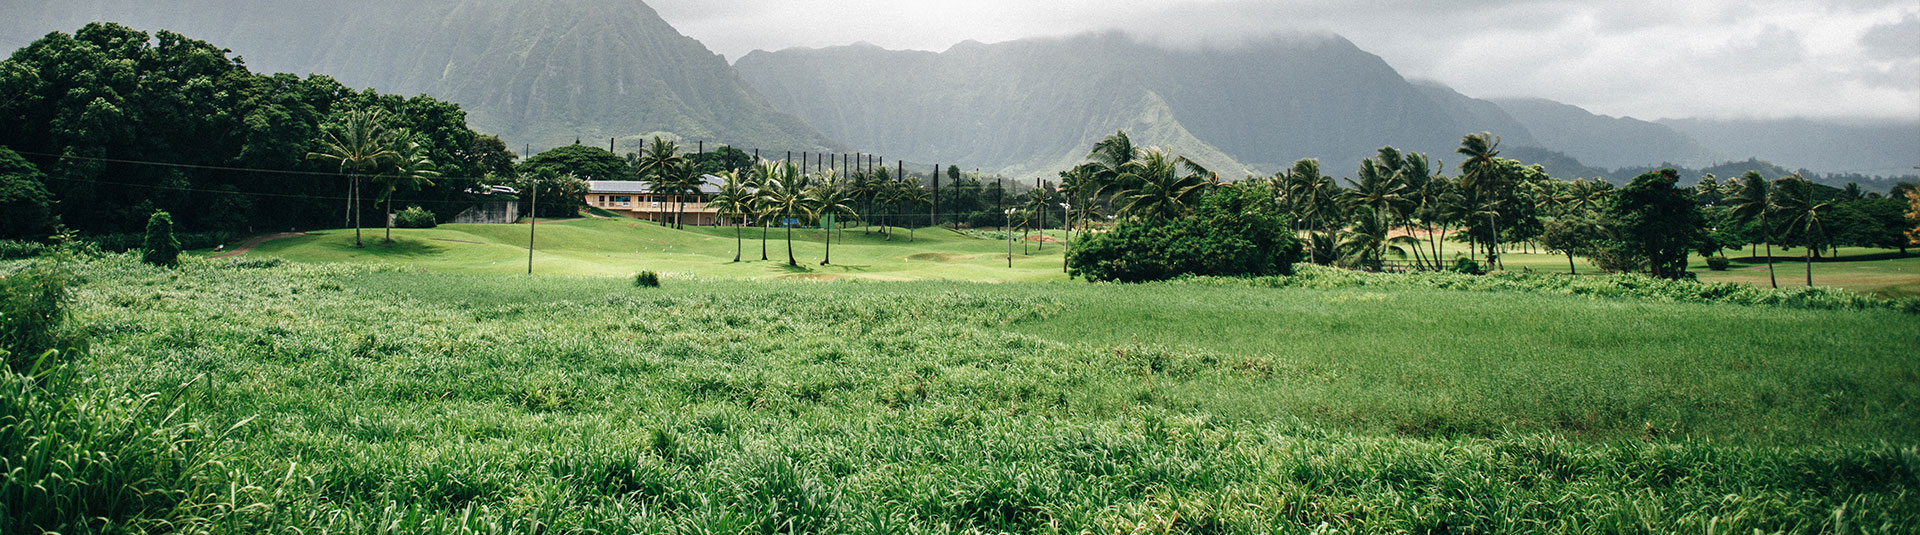 Bay View Golf Course in Kaneohe